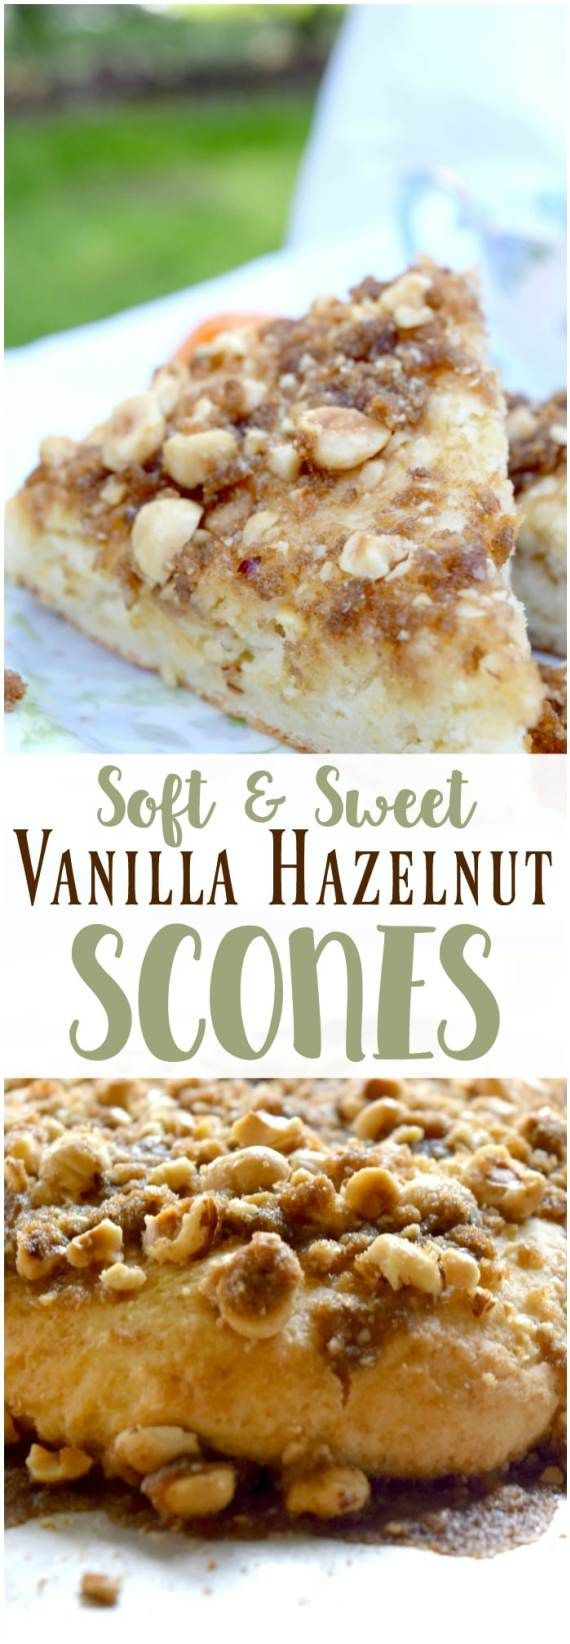 Vanilla Hazelnut Scones Recipe Food, Scones, Dessert